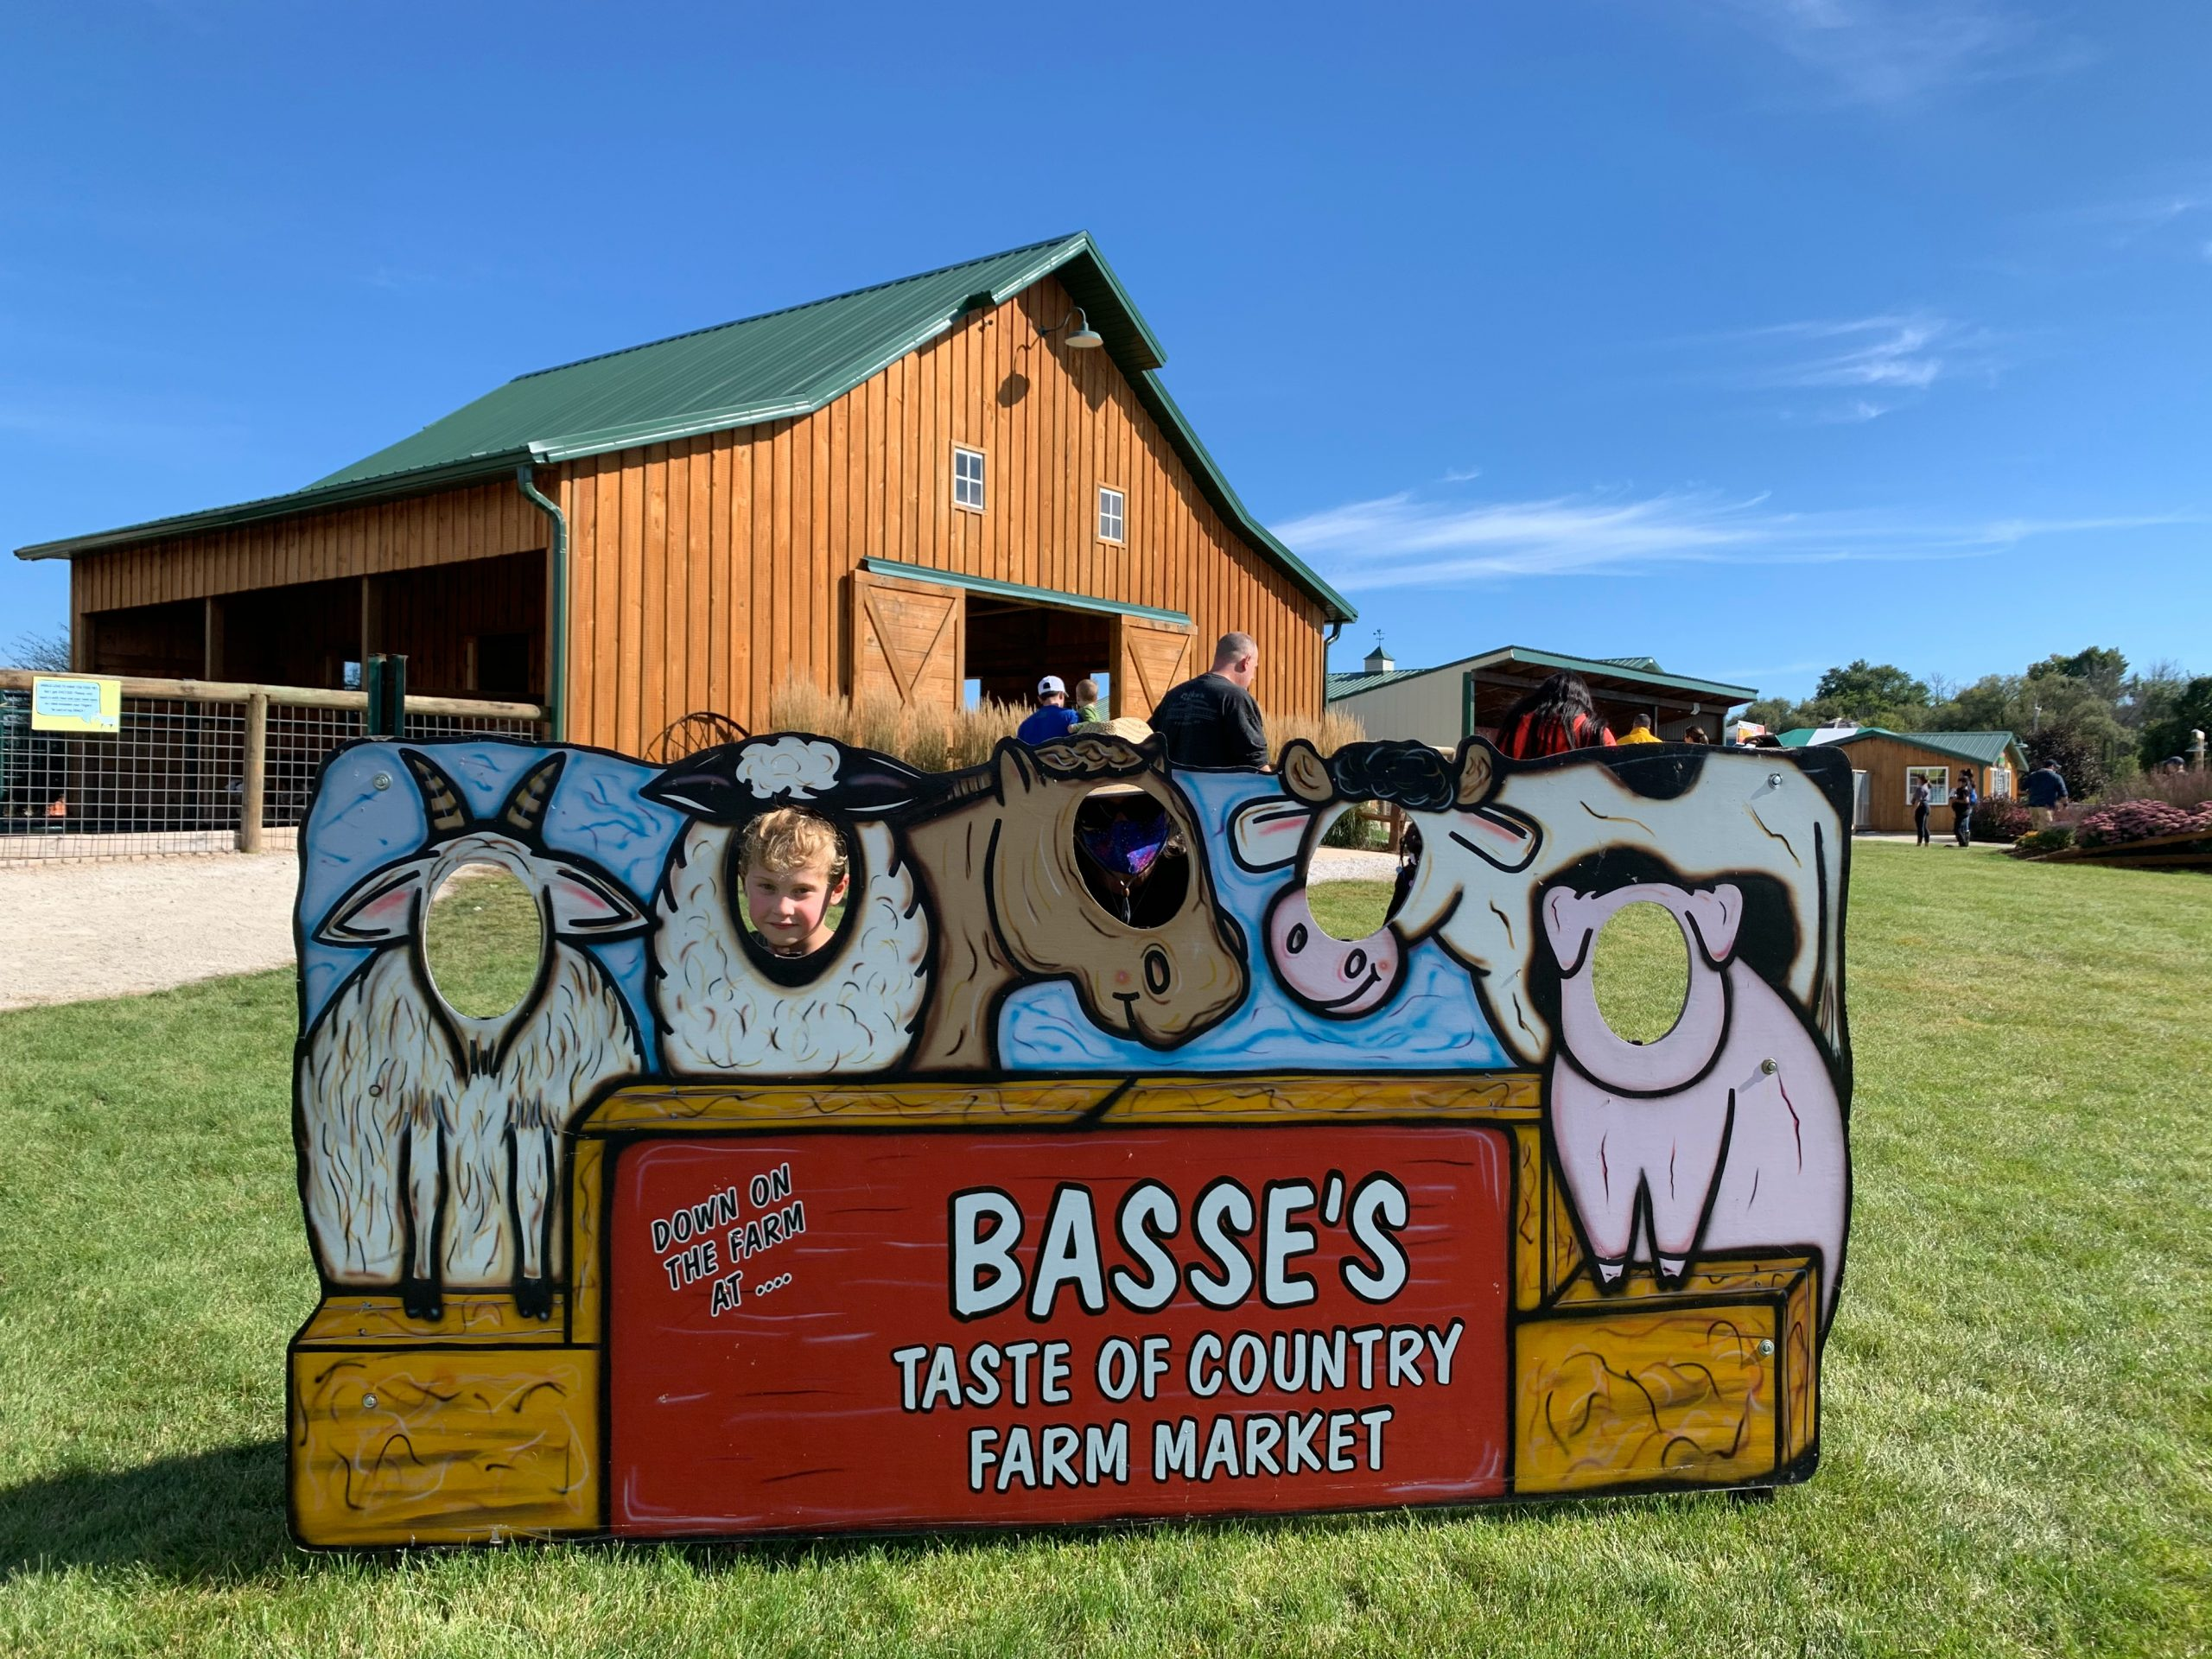 Fall Fun at Basse's Taste of Country